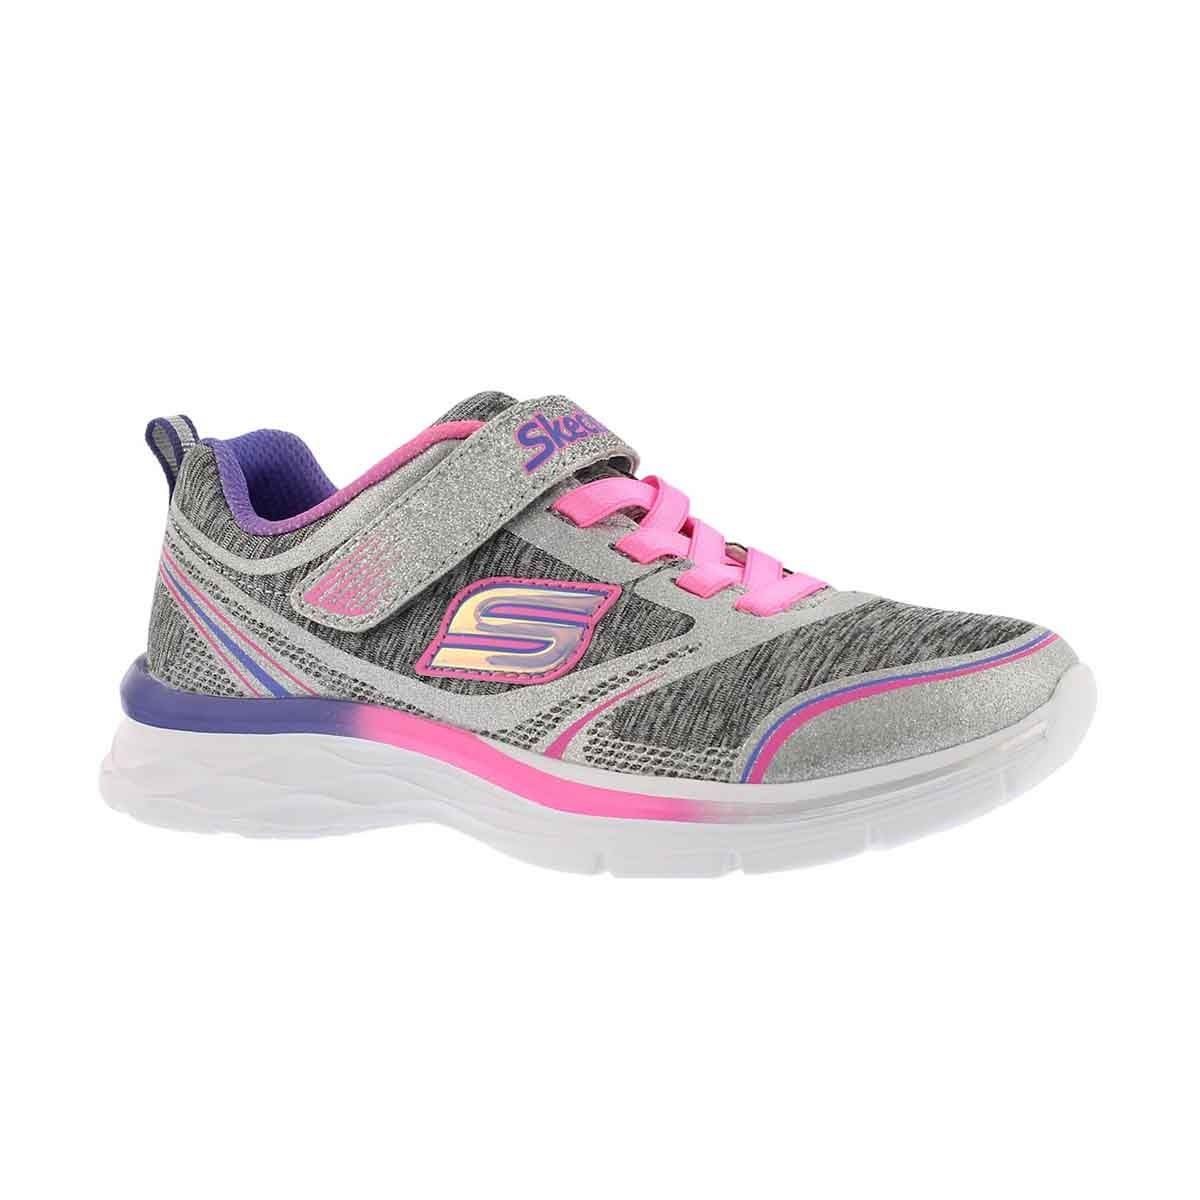 Girls' DREAM N' DASH grey/pink glitter sneaker